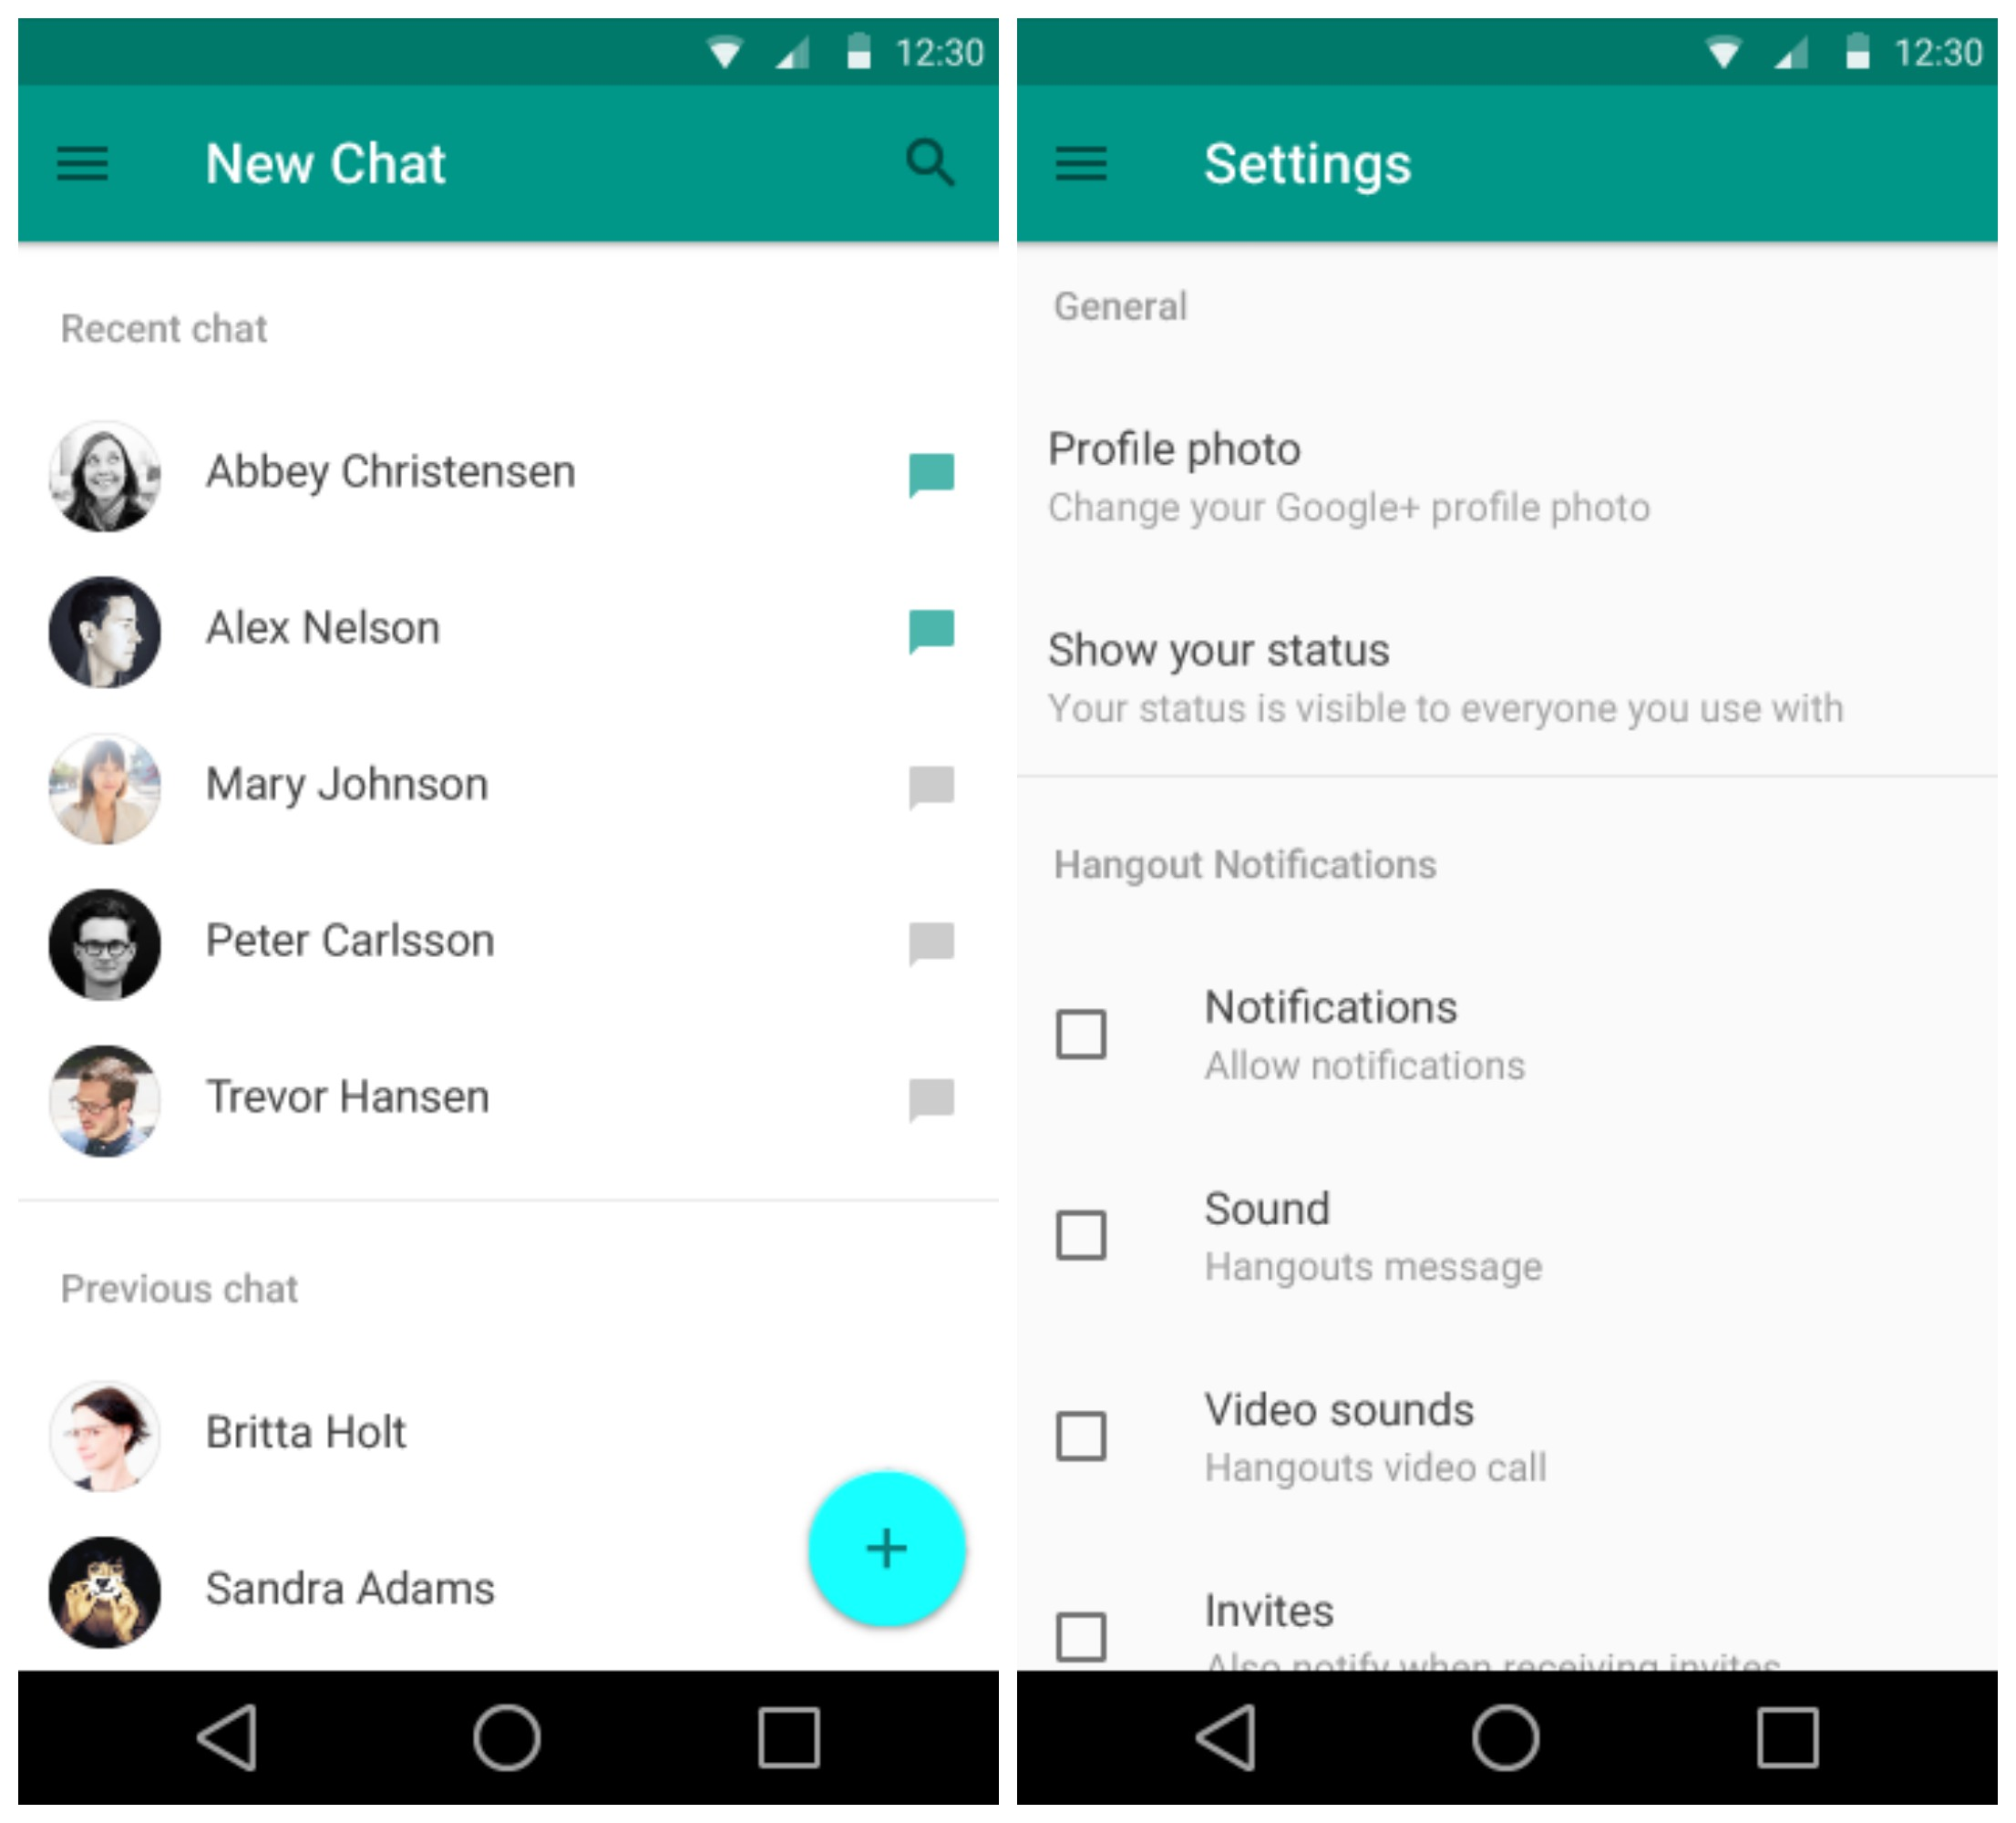 So Is Android, Version 4.0 Google Redesigned to Material Design